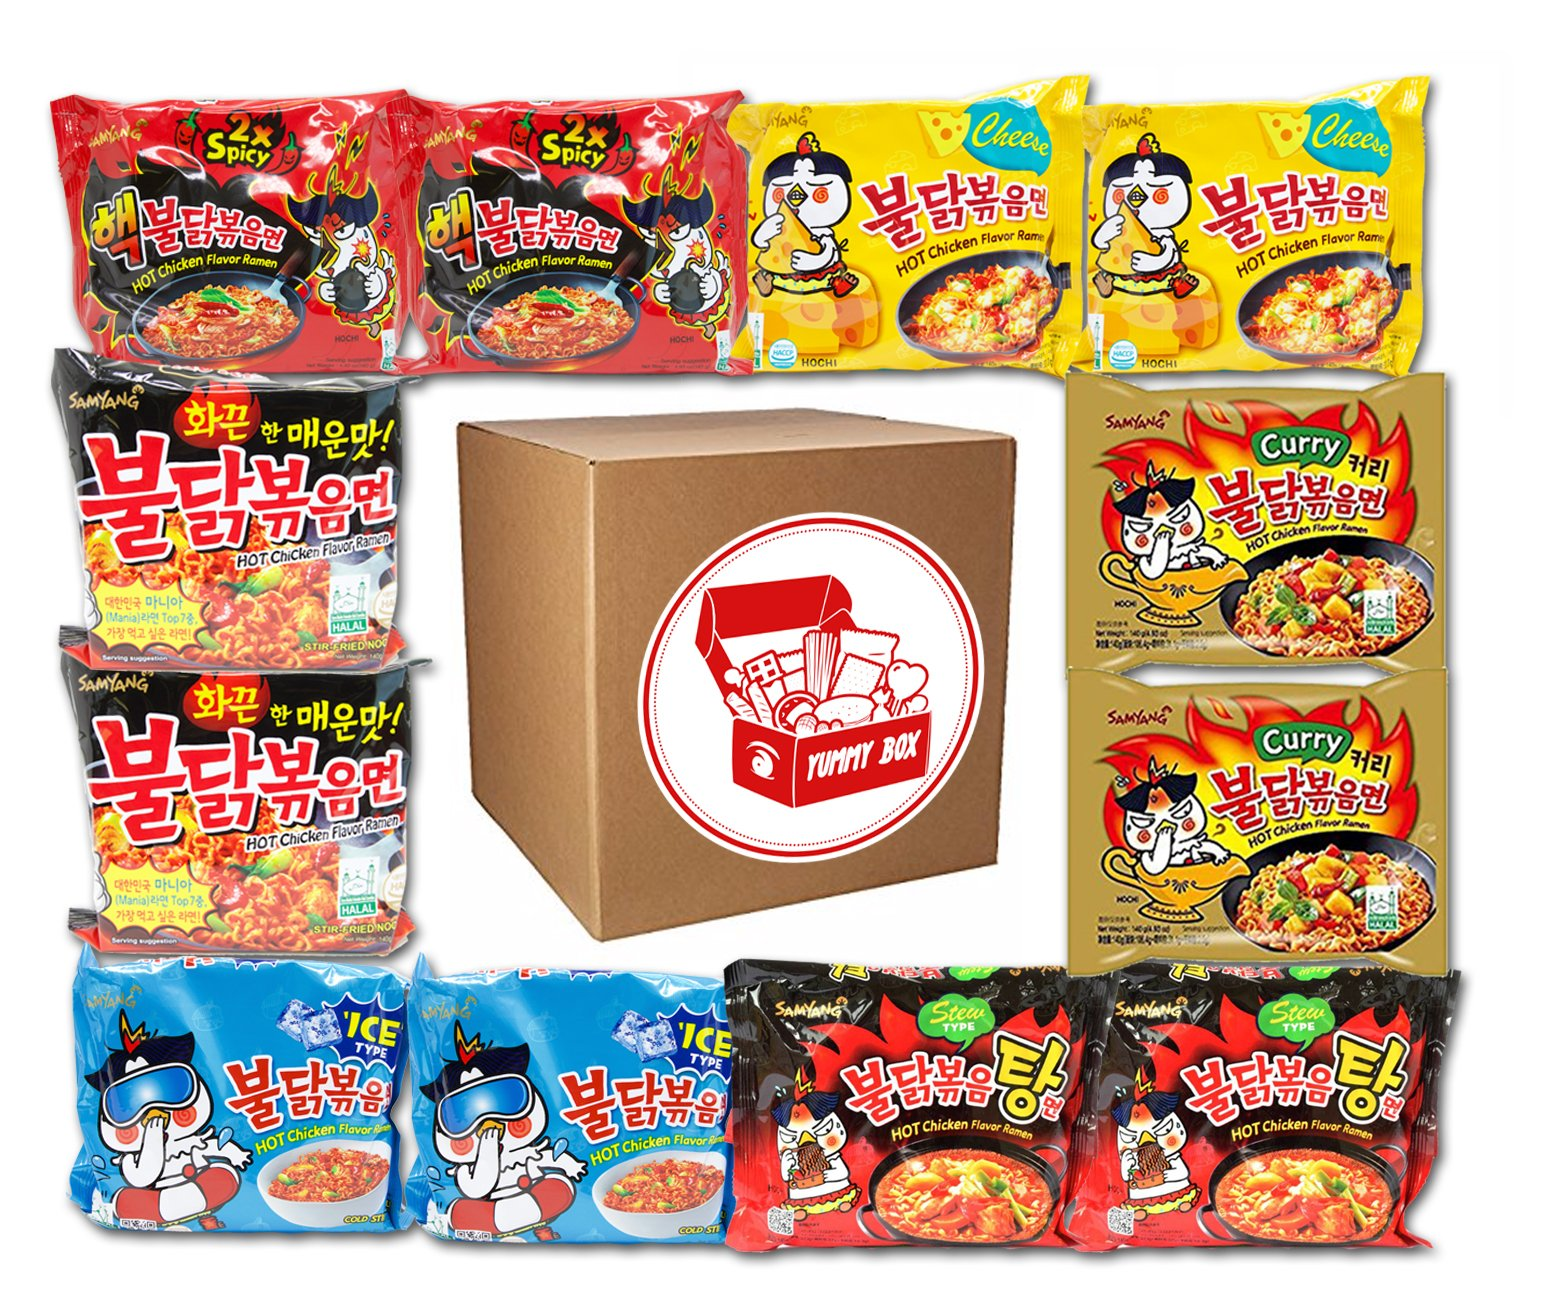 Buy Samyang Ramen Spicy Hot Chicken Roasted Noodles Variety 12 Pack Nuclear 2x Hek